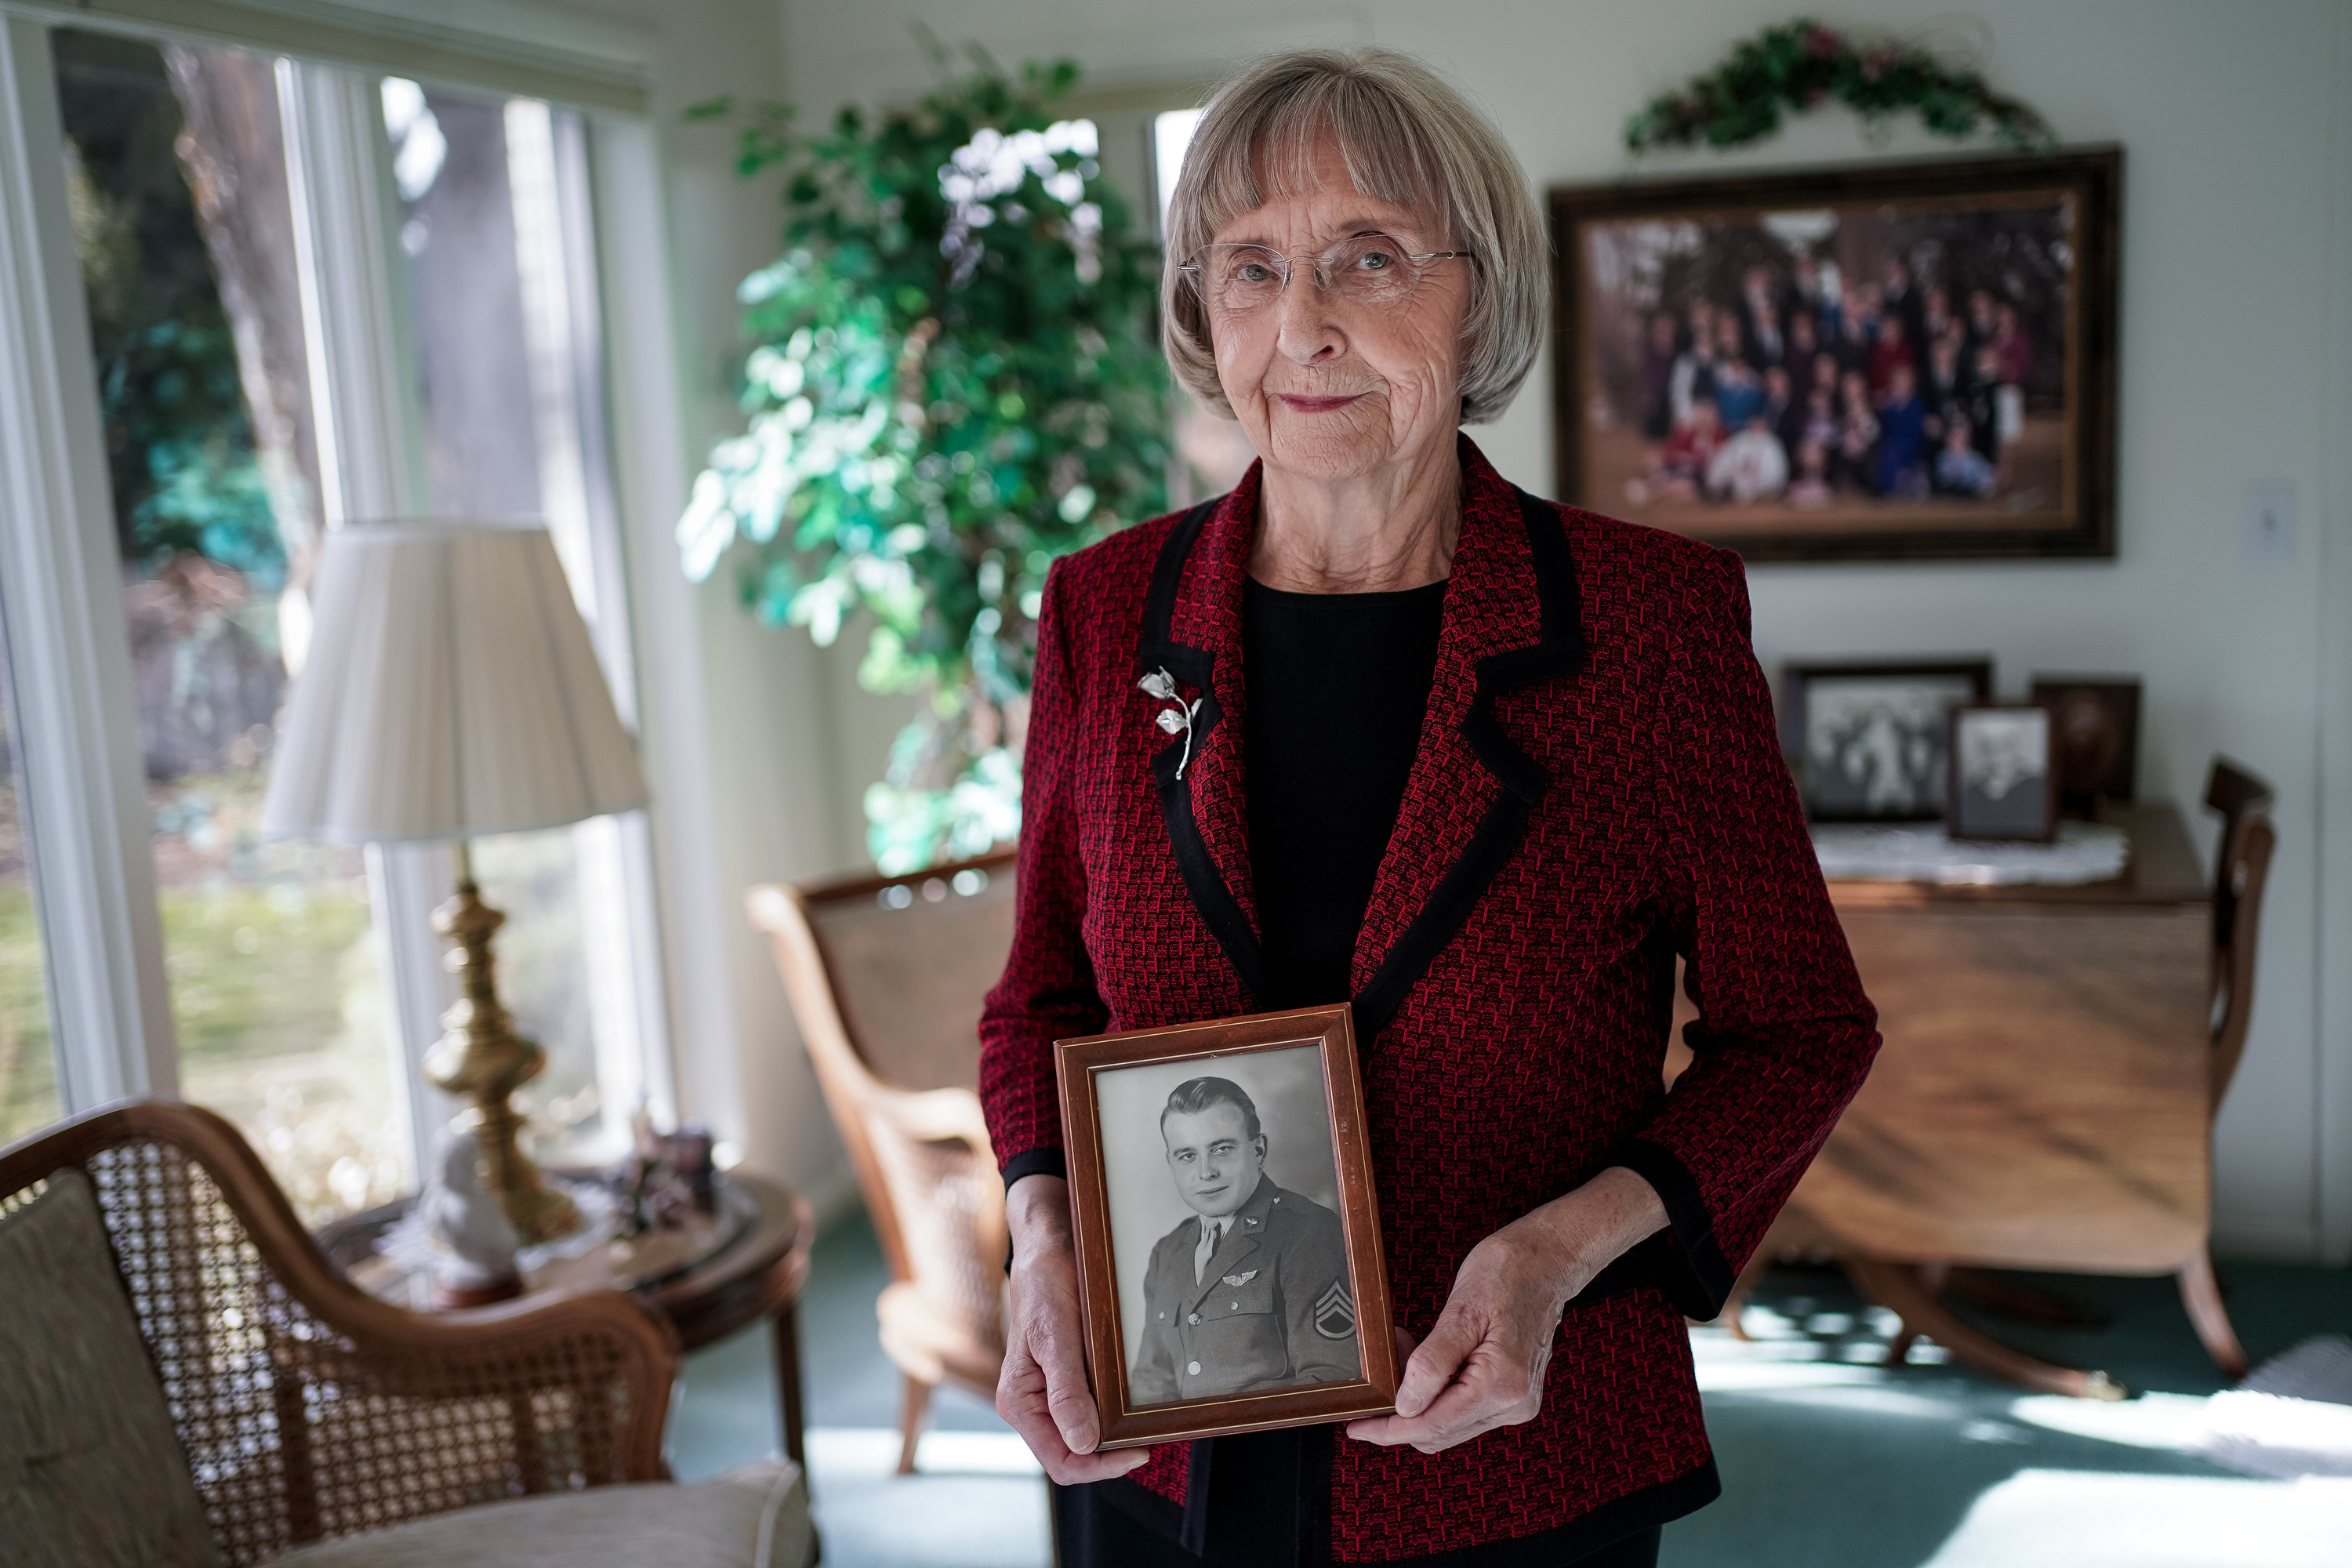 Helen Lower Simmons poses for a portrait while holding a photograph of her brother, Max Wendell Lower, taken while he served in the Army Air Forces during World War II, at her home in Logan on Thursday, Nov. 14, 2019. Max Lower was killed when his plane was shot down during the Operation Tidal Wave attacks on Romanian oil refineries during the war. His remains were recently identified using DNA technology and will soon be returned to his family in Utah.